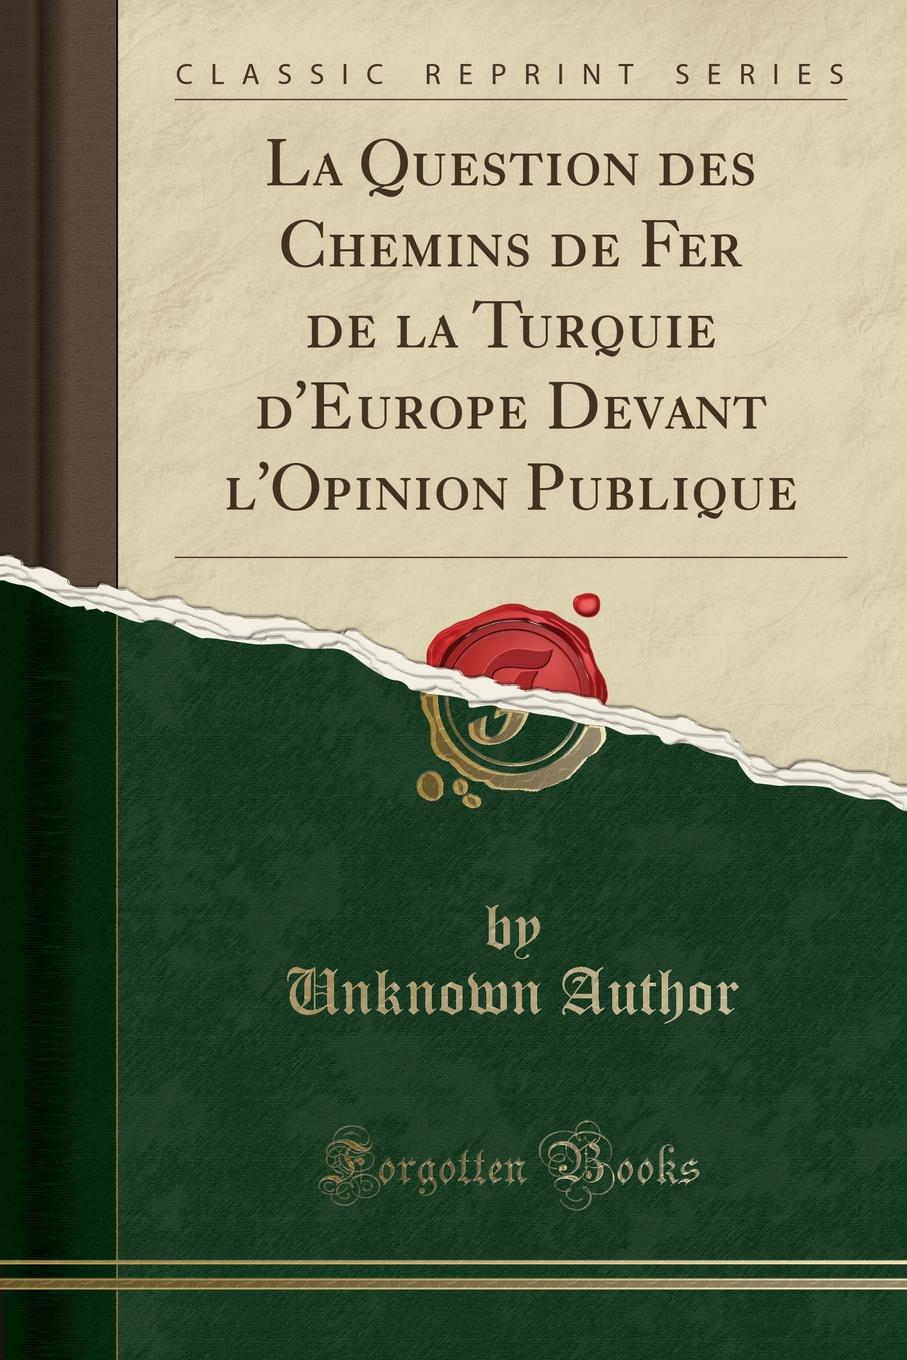 La Question des Chemins de Fer de la Turquie d.Europe Devant l.Opinion Publique (Classic Reprint) Excerpt from La Question des Chemins de Fer de la Turquie...